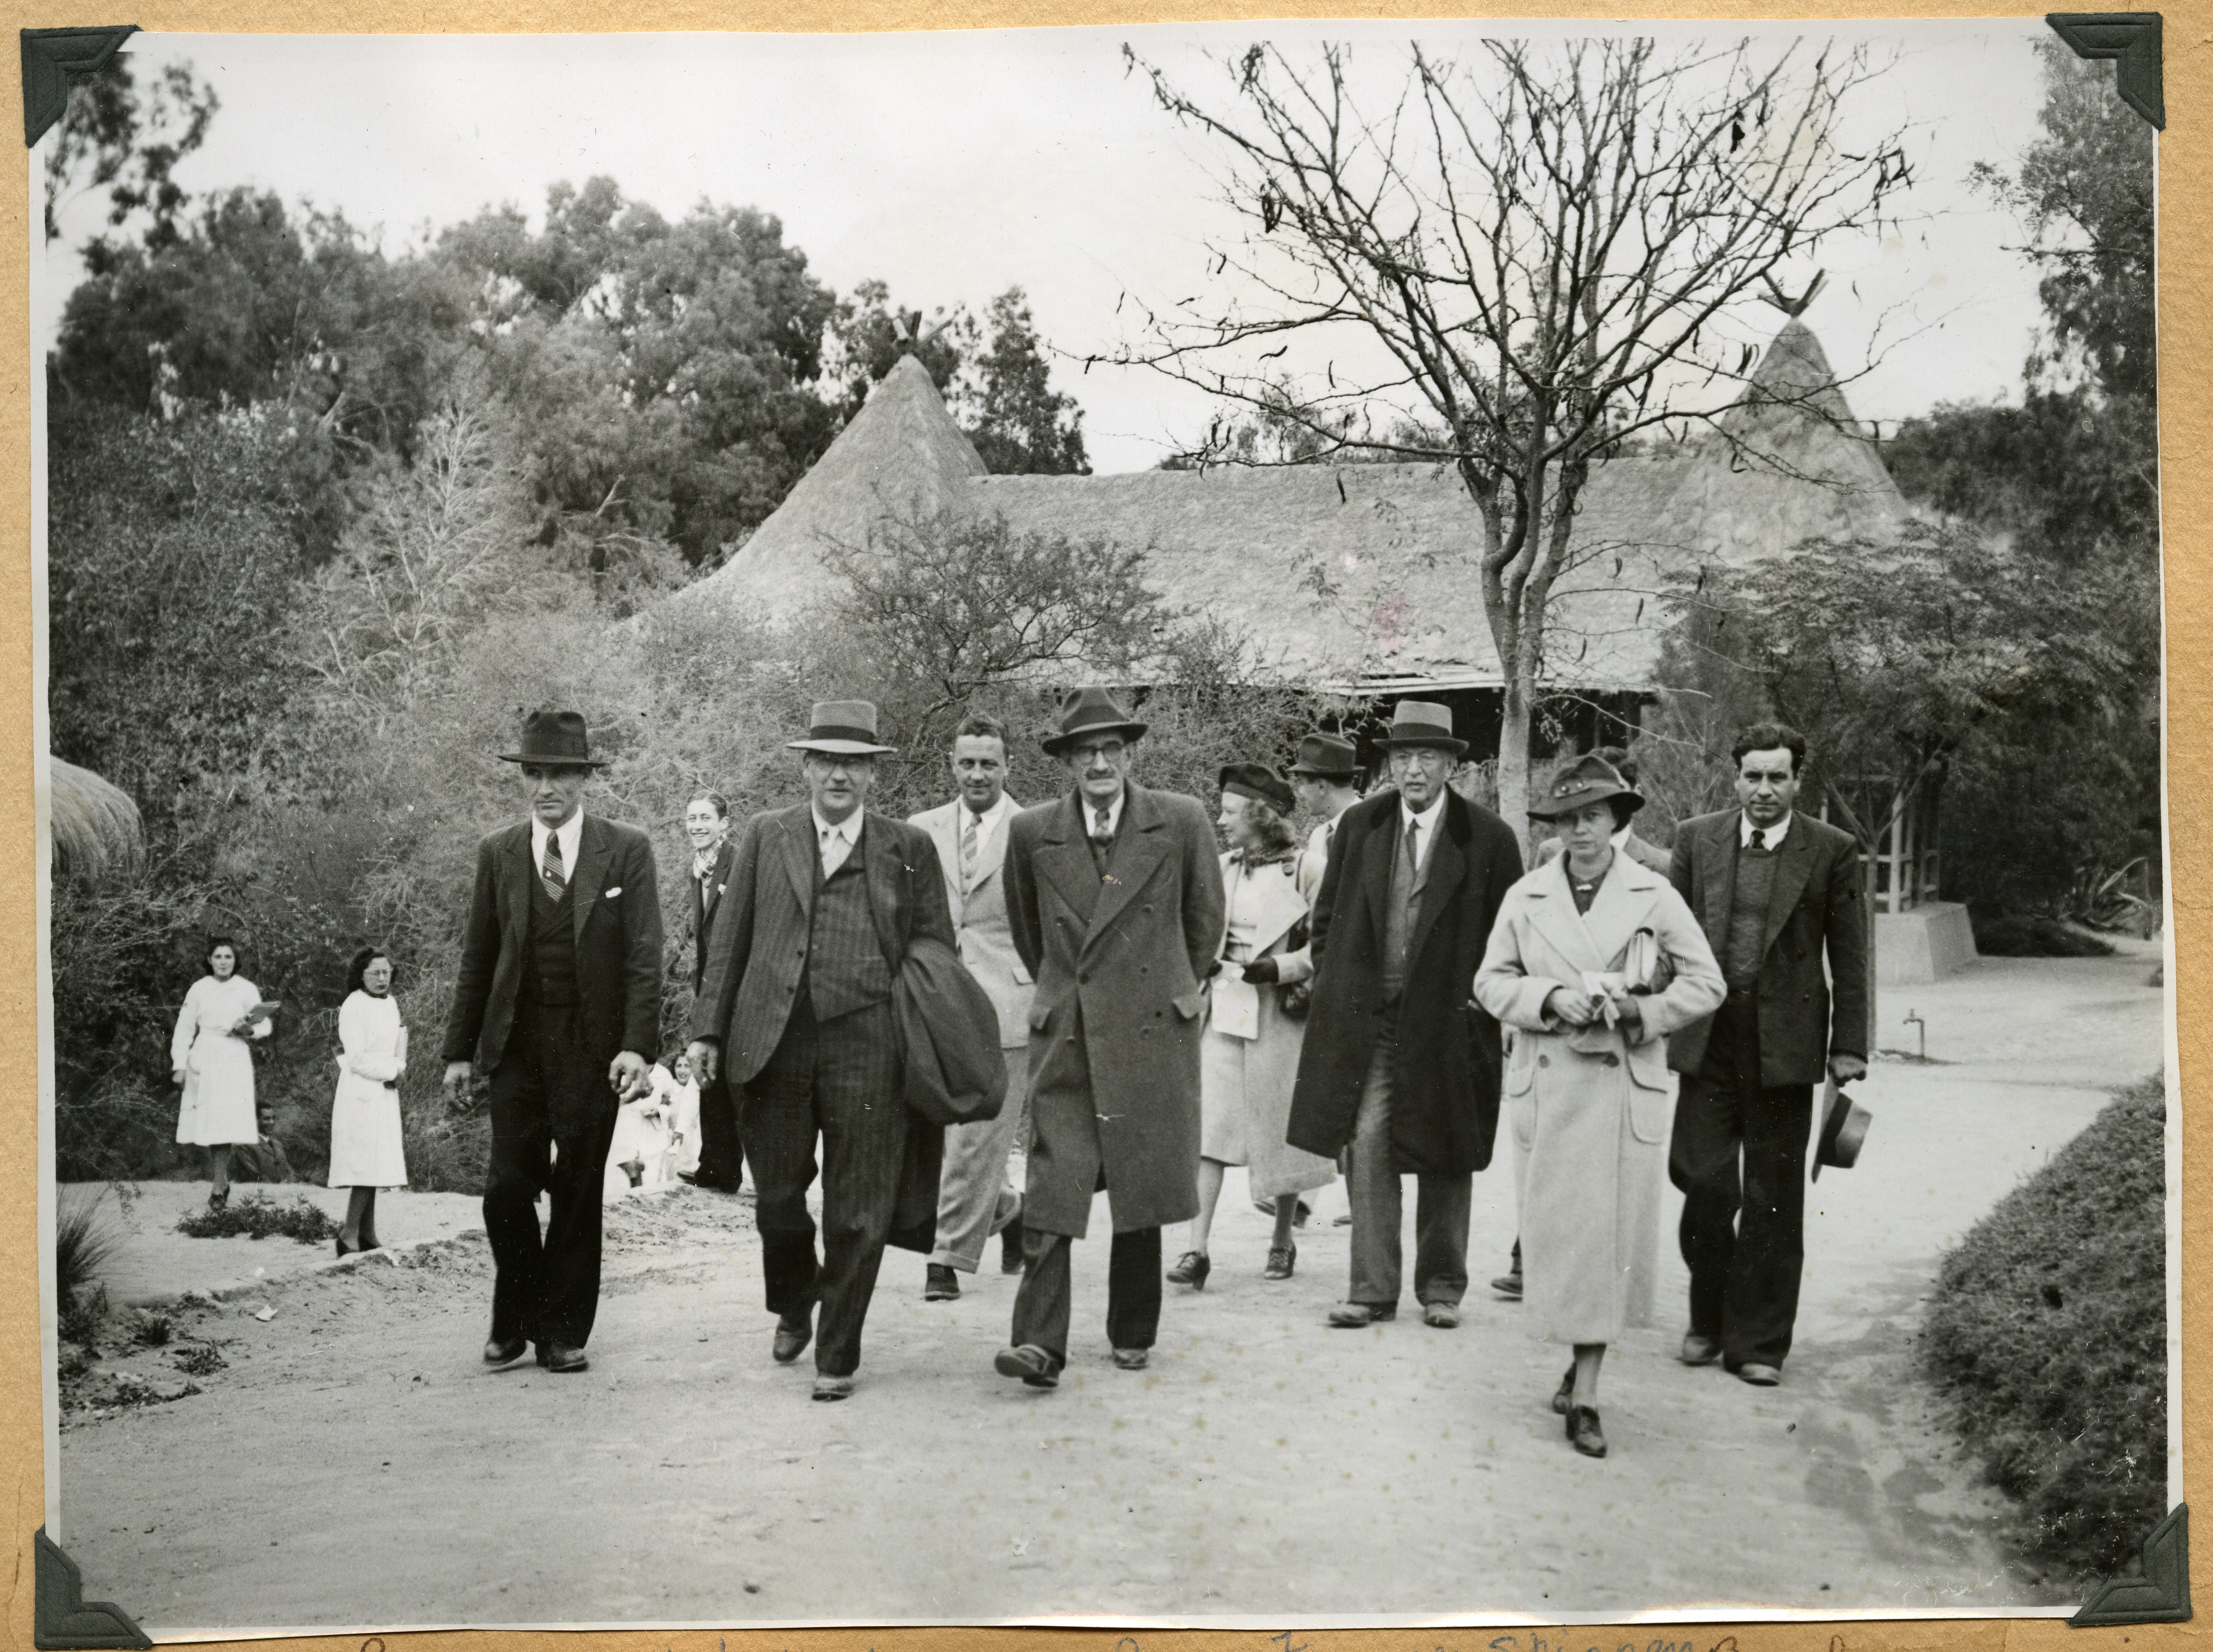 A group in hats and formal clothing walk on a road. Lucile Mann is in the front, to the right.